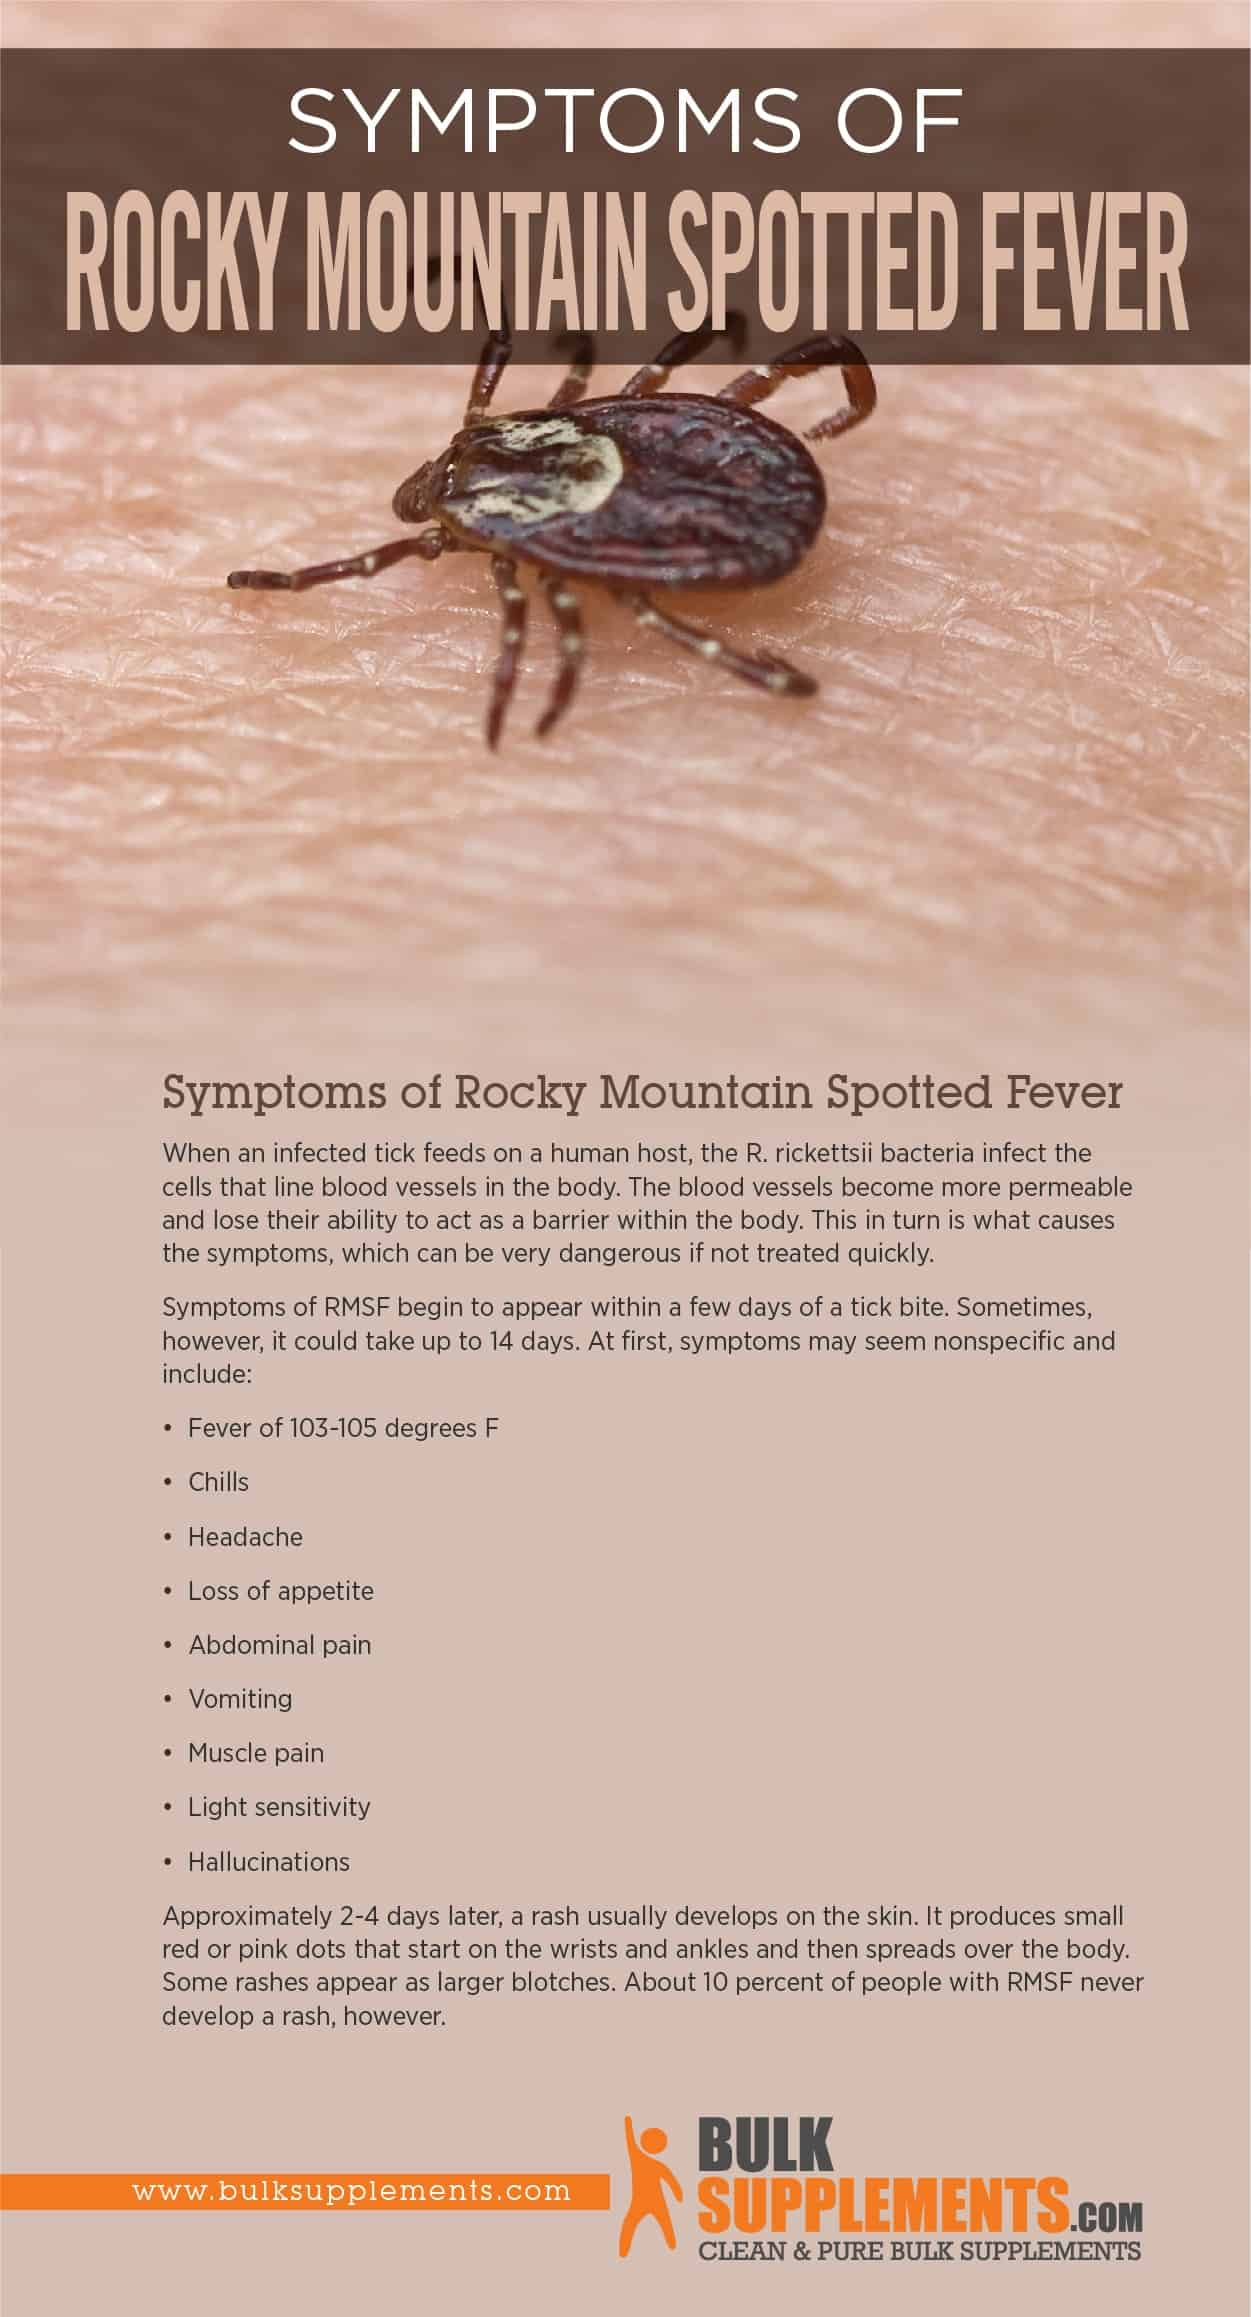 Symptoms of Rocky Mountain Spotted Fever